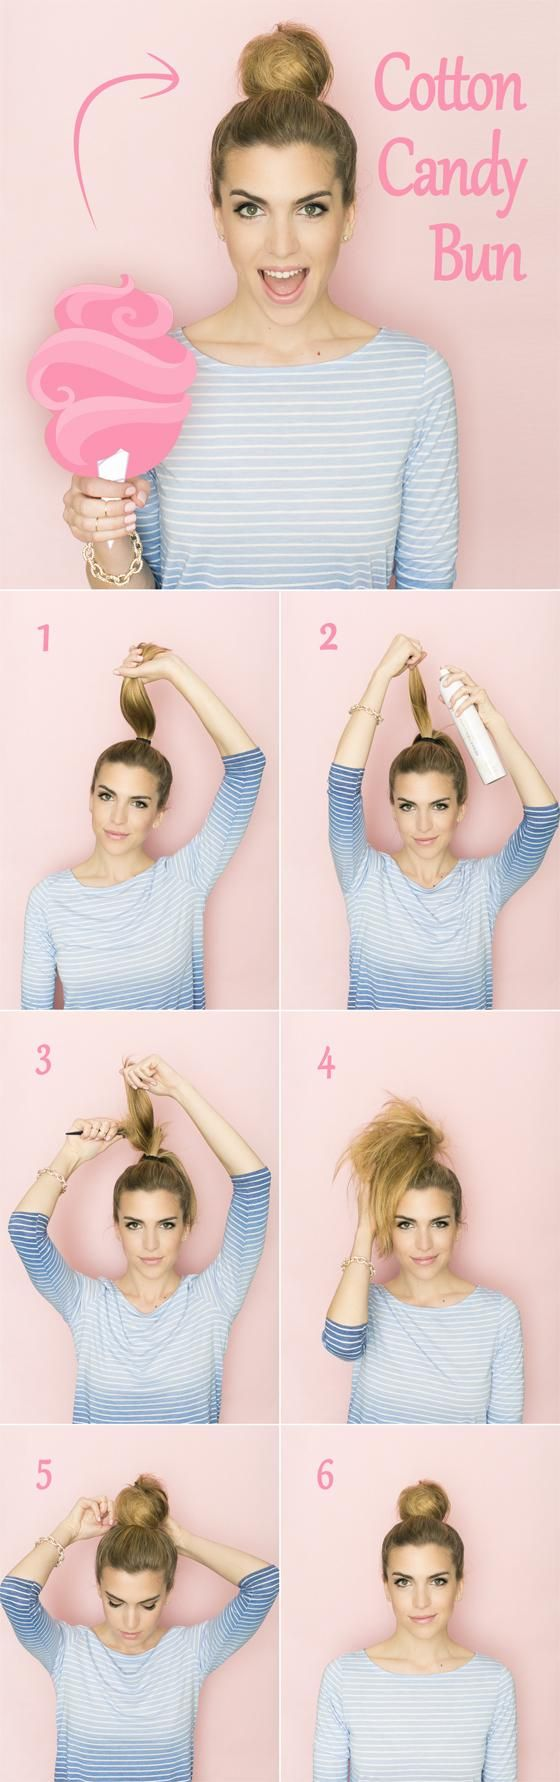 Hair Tutorial: Cotton Candy Bun